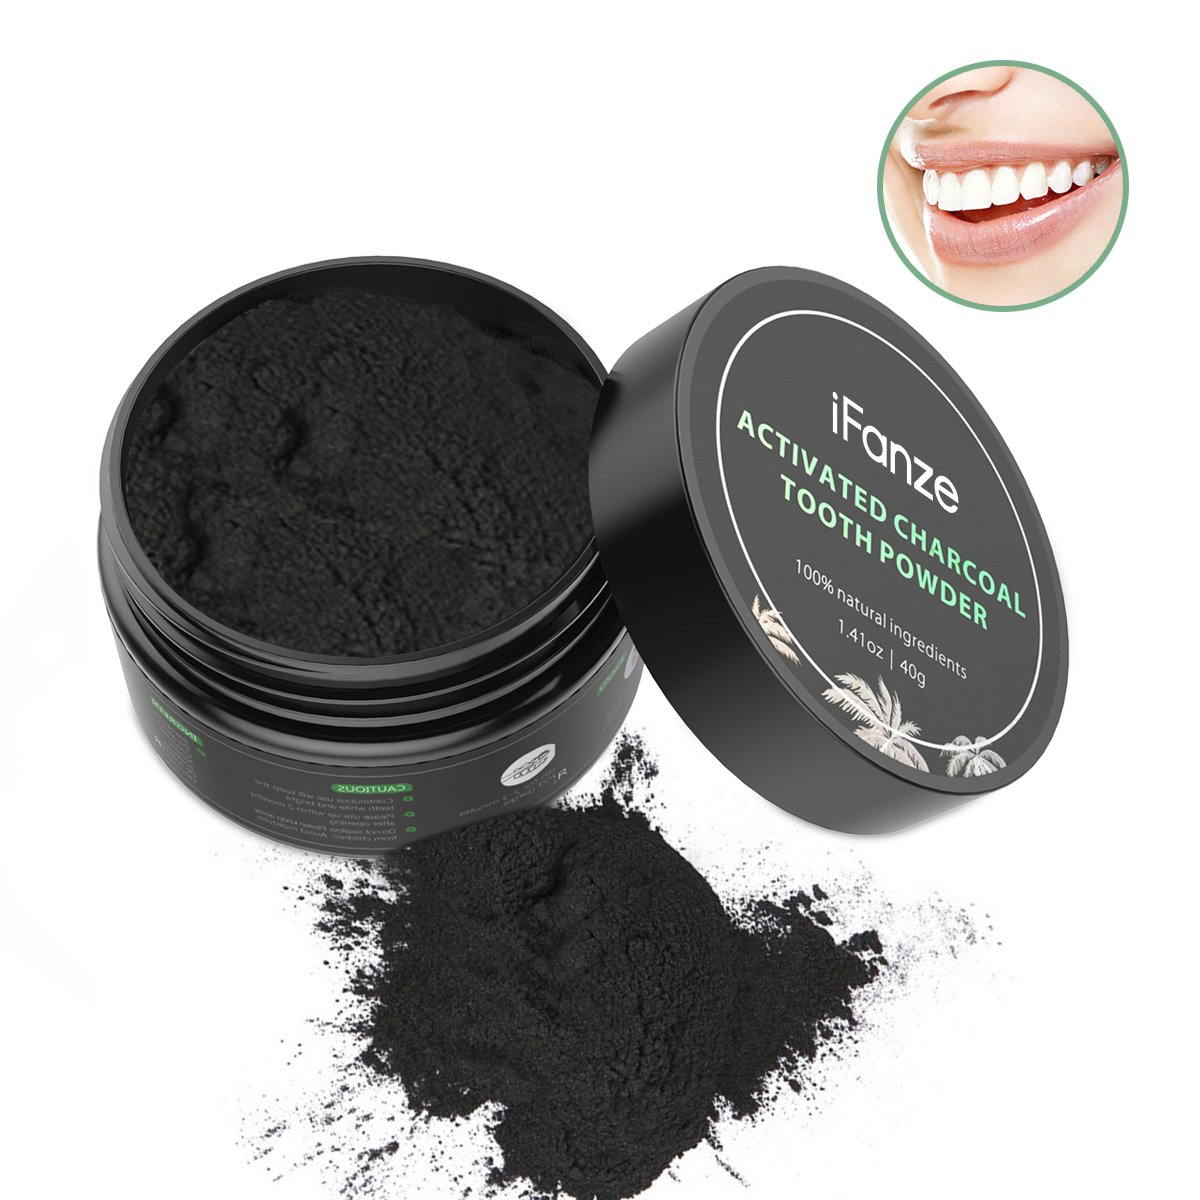 Activated charcoal powder teeth, coconut charcoal teeth whitening, iFanze Teeth whitening charcoal powder, dental care whitening products - 100% Natural, No chemical additives, Activated charcoal teet